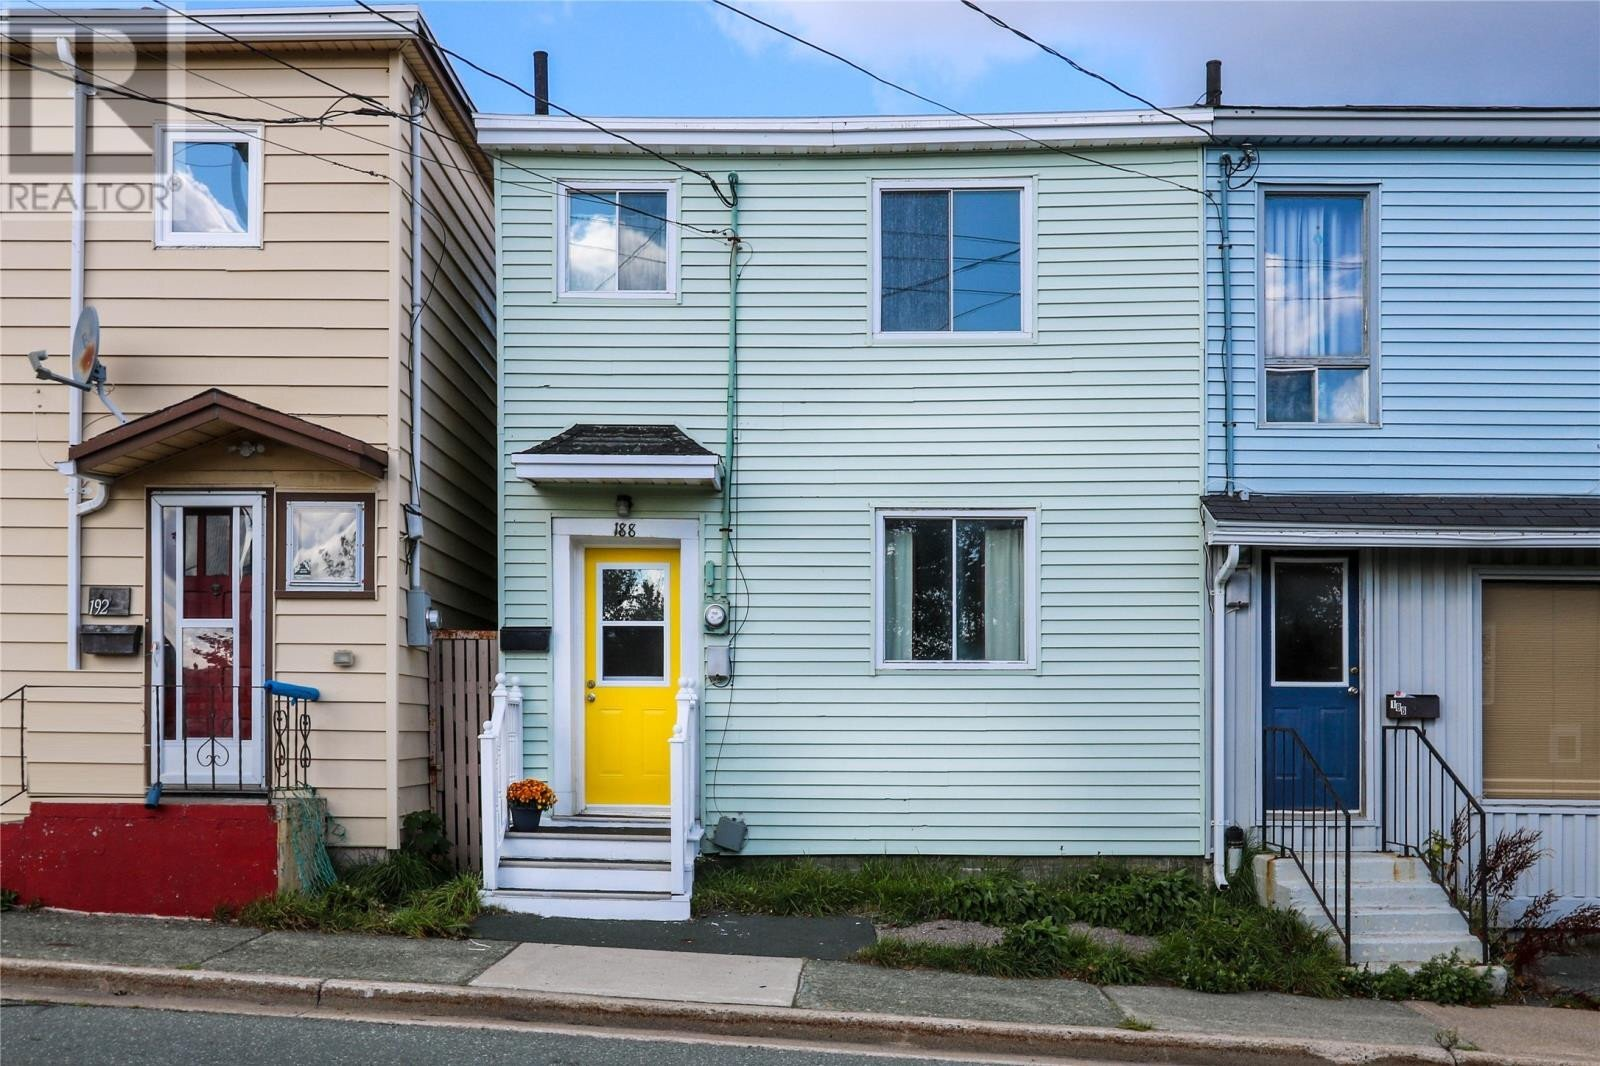 House for sale at 188 Pleasant St St. John's Newfoundland - MLS: 1224687